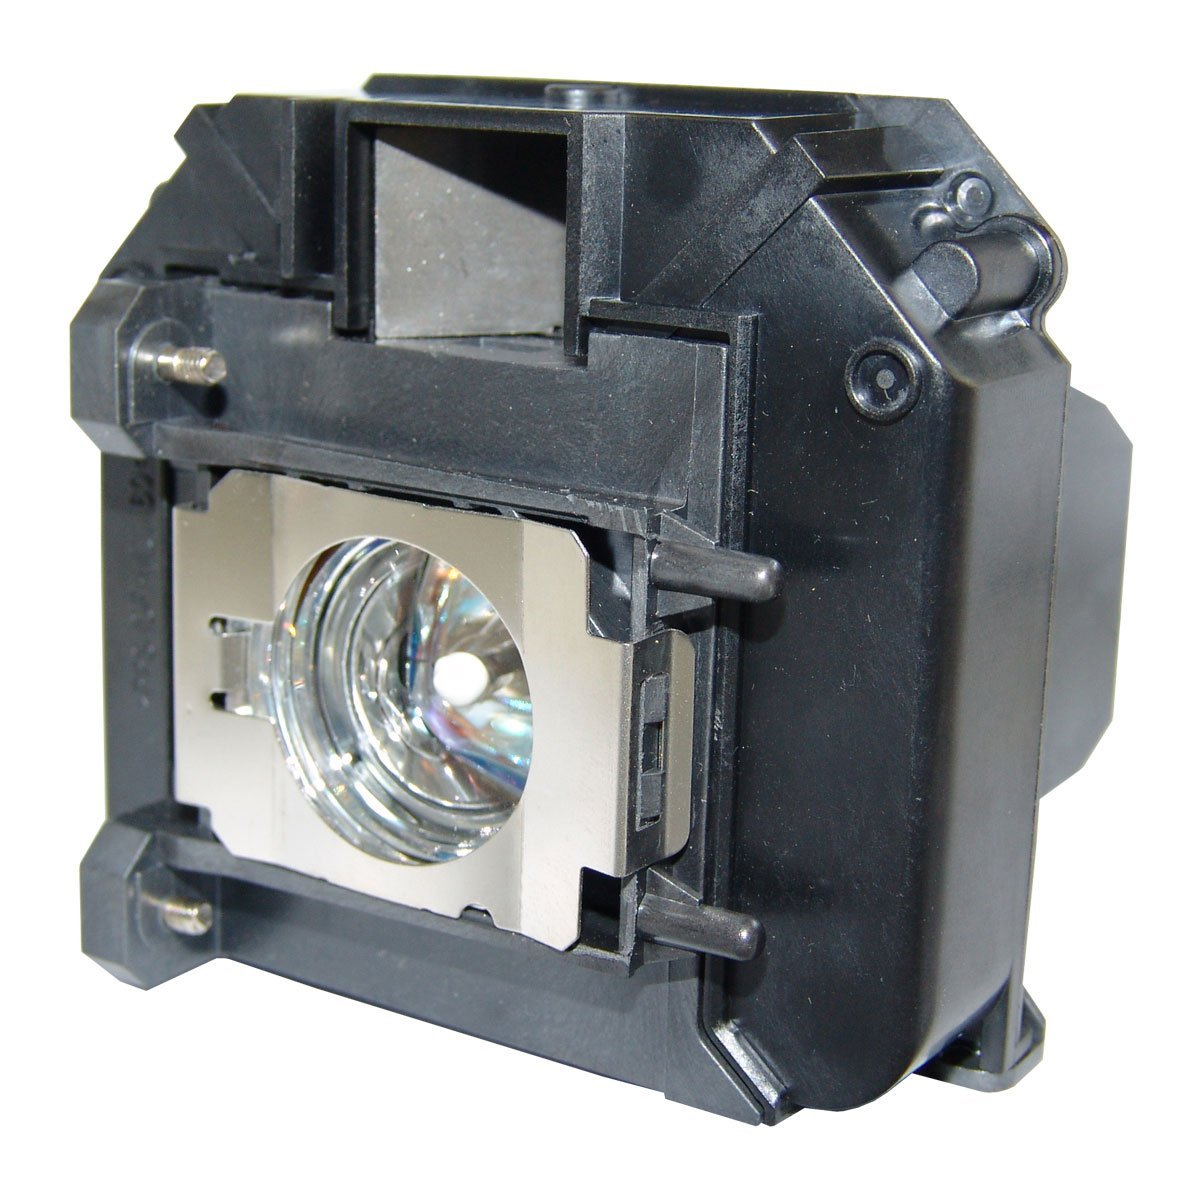 Projector Lamp Bulb ELPLP60 V13H010L60 for Epson EB-905 EB-93 EB-93e EB-95 EB-96W EB-420 EB-425W with housing epson eb 425w v11h448040